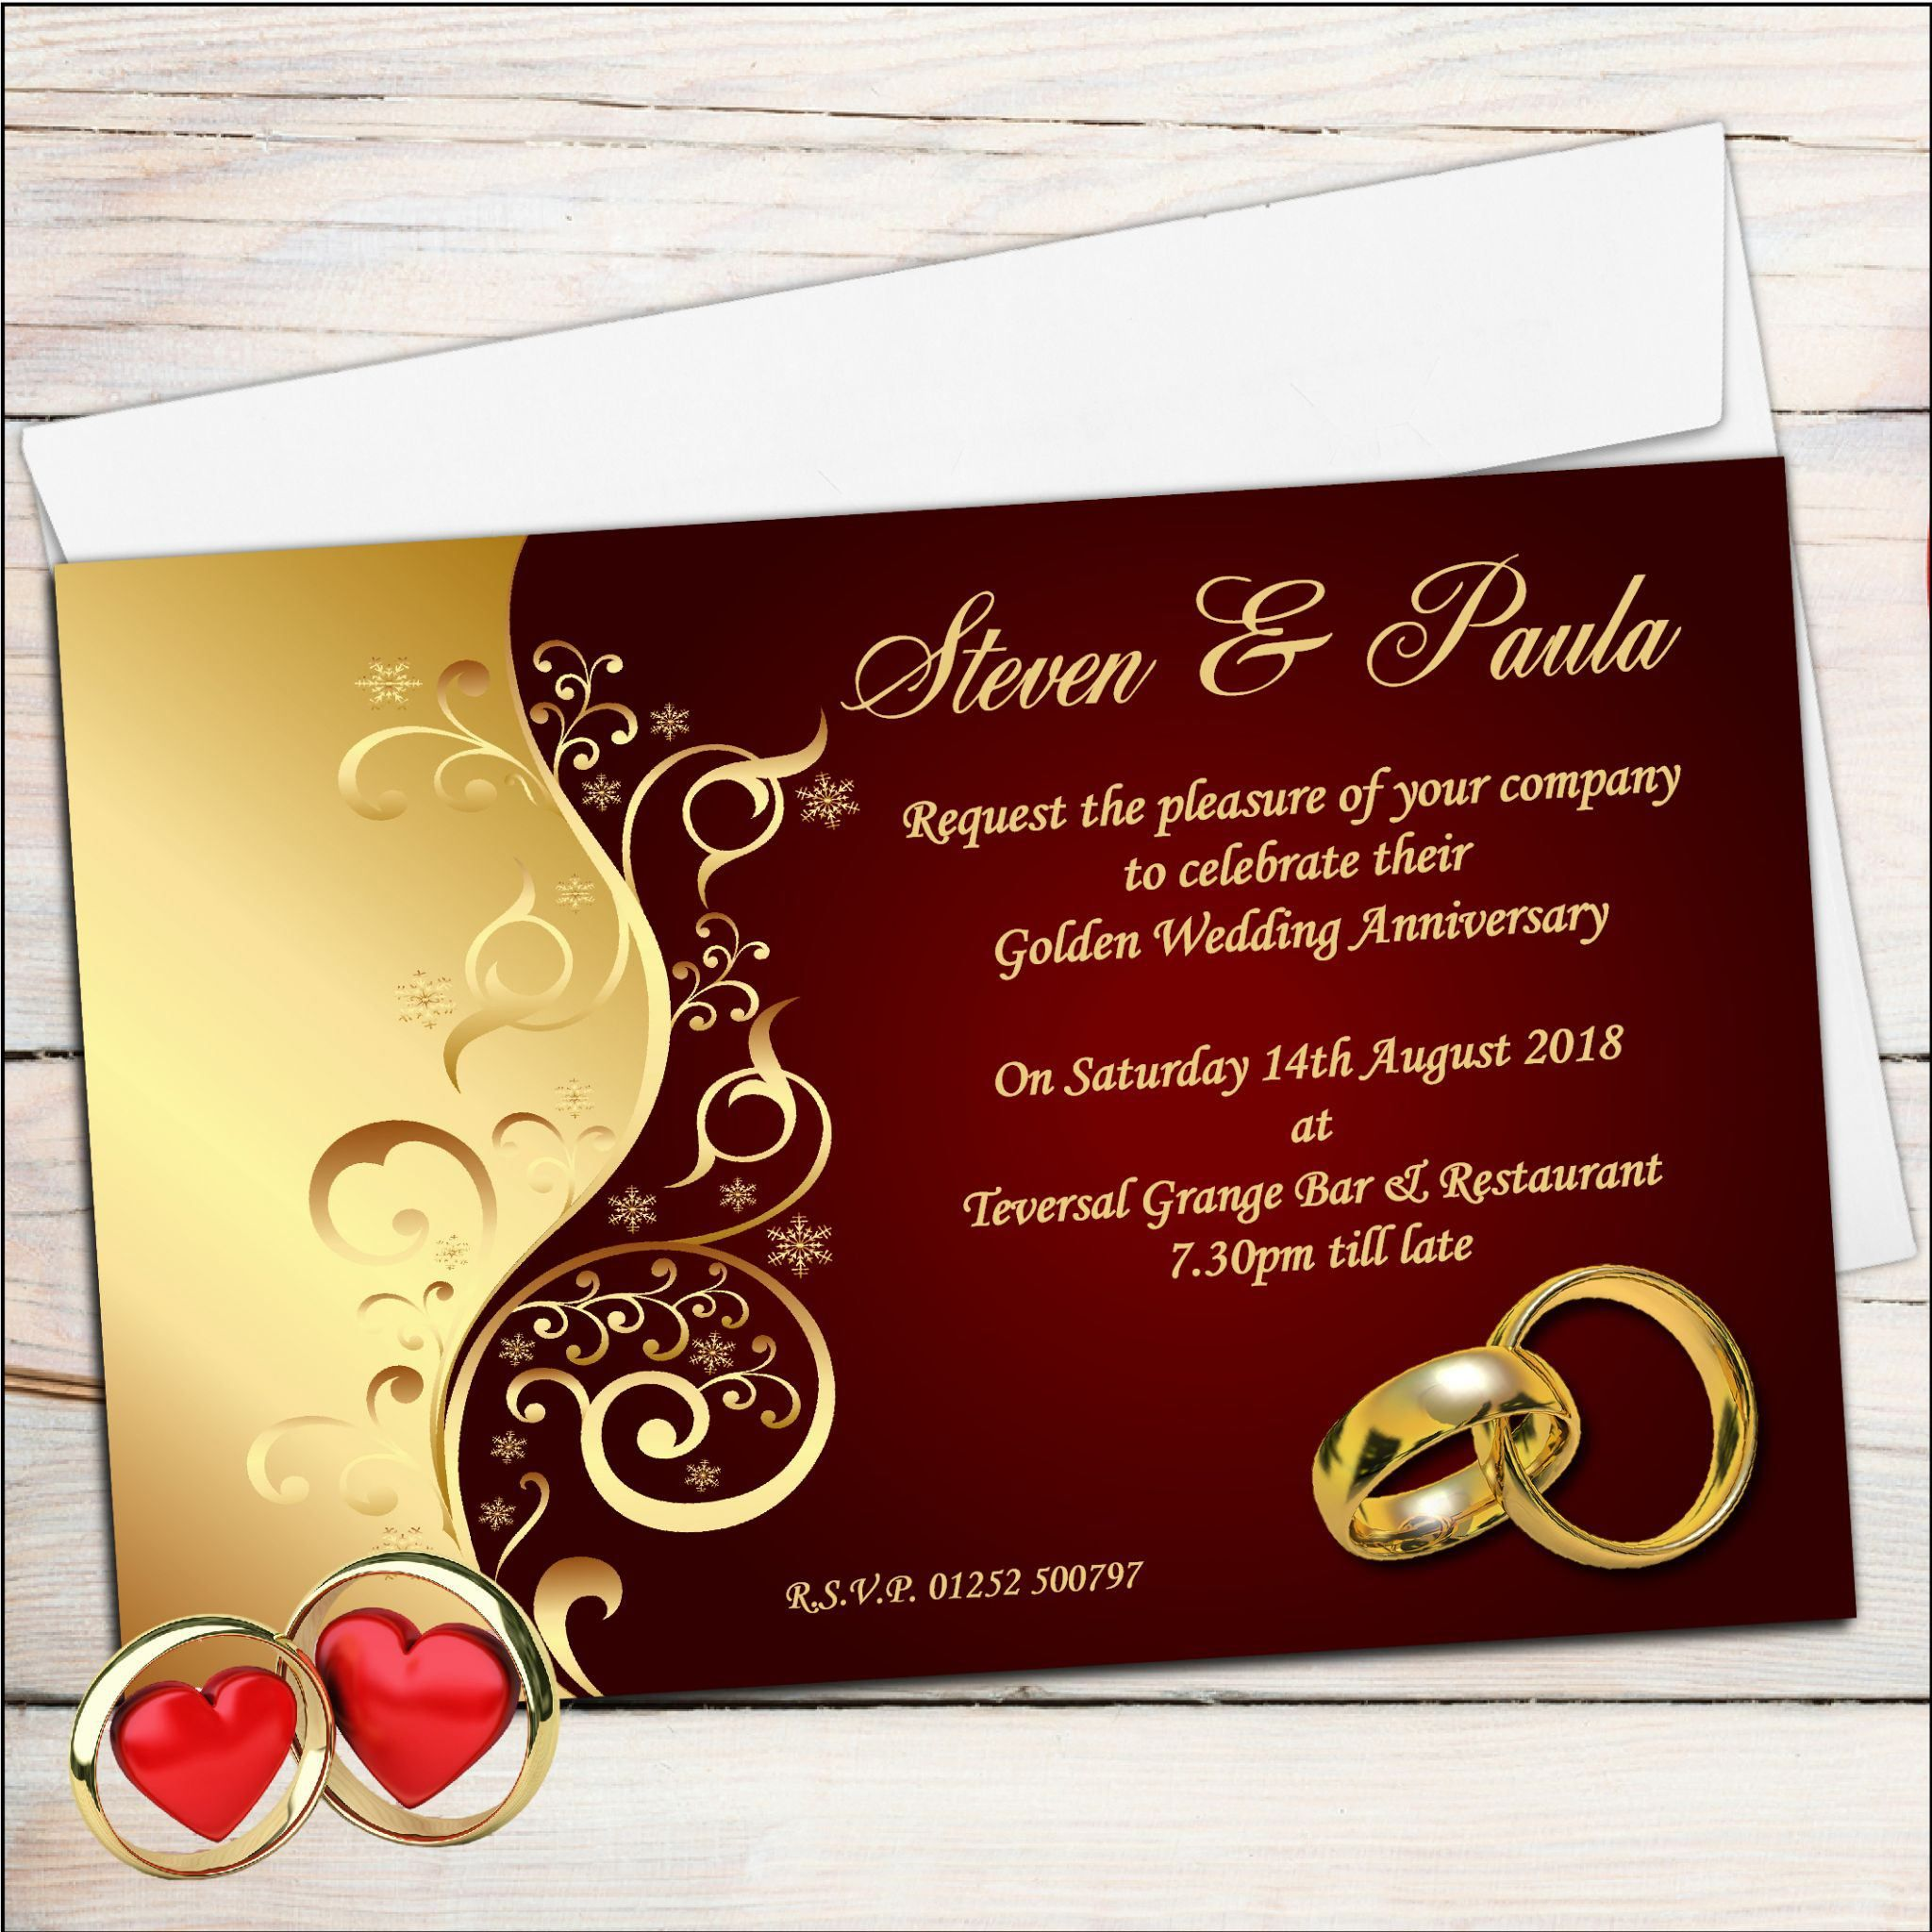 Wedding Invitations Cards : Wedding Invitations Cards Near Me ...